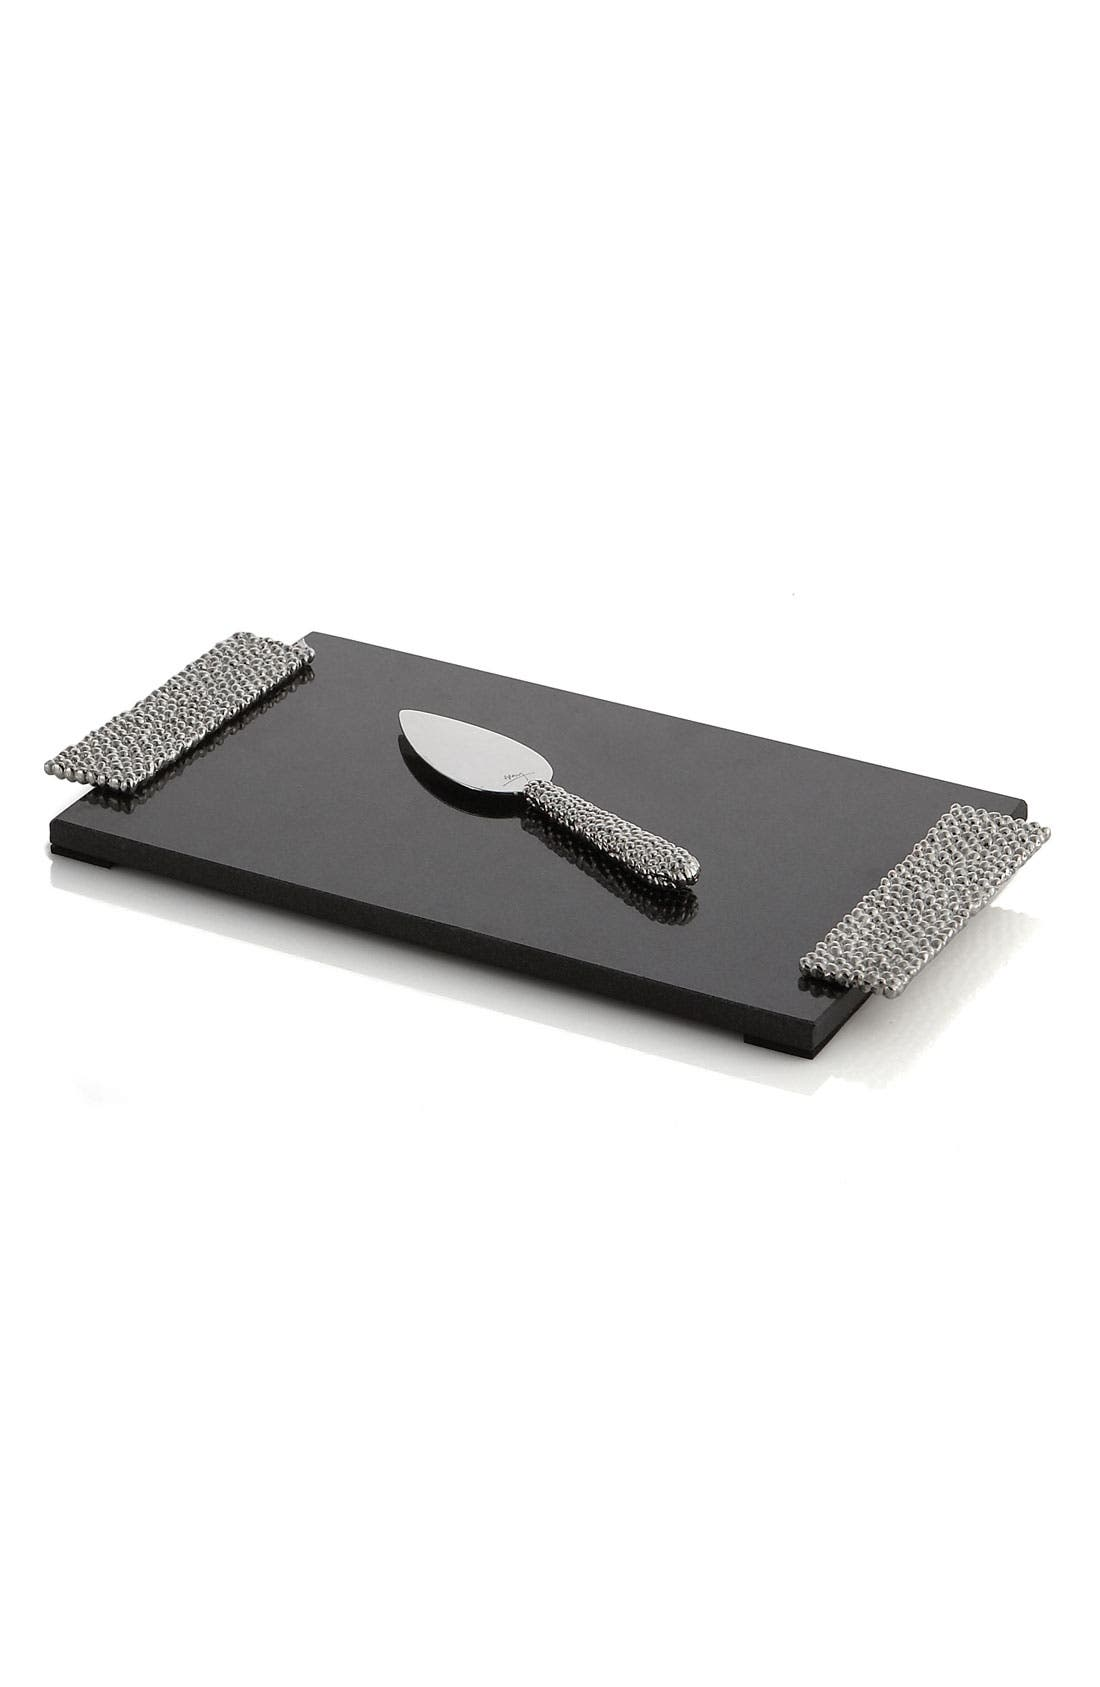 Alternate Image 1 Selected - Michael Aram 'Molten' Cheeseboard & Knife